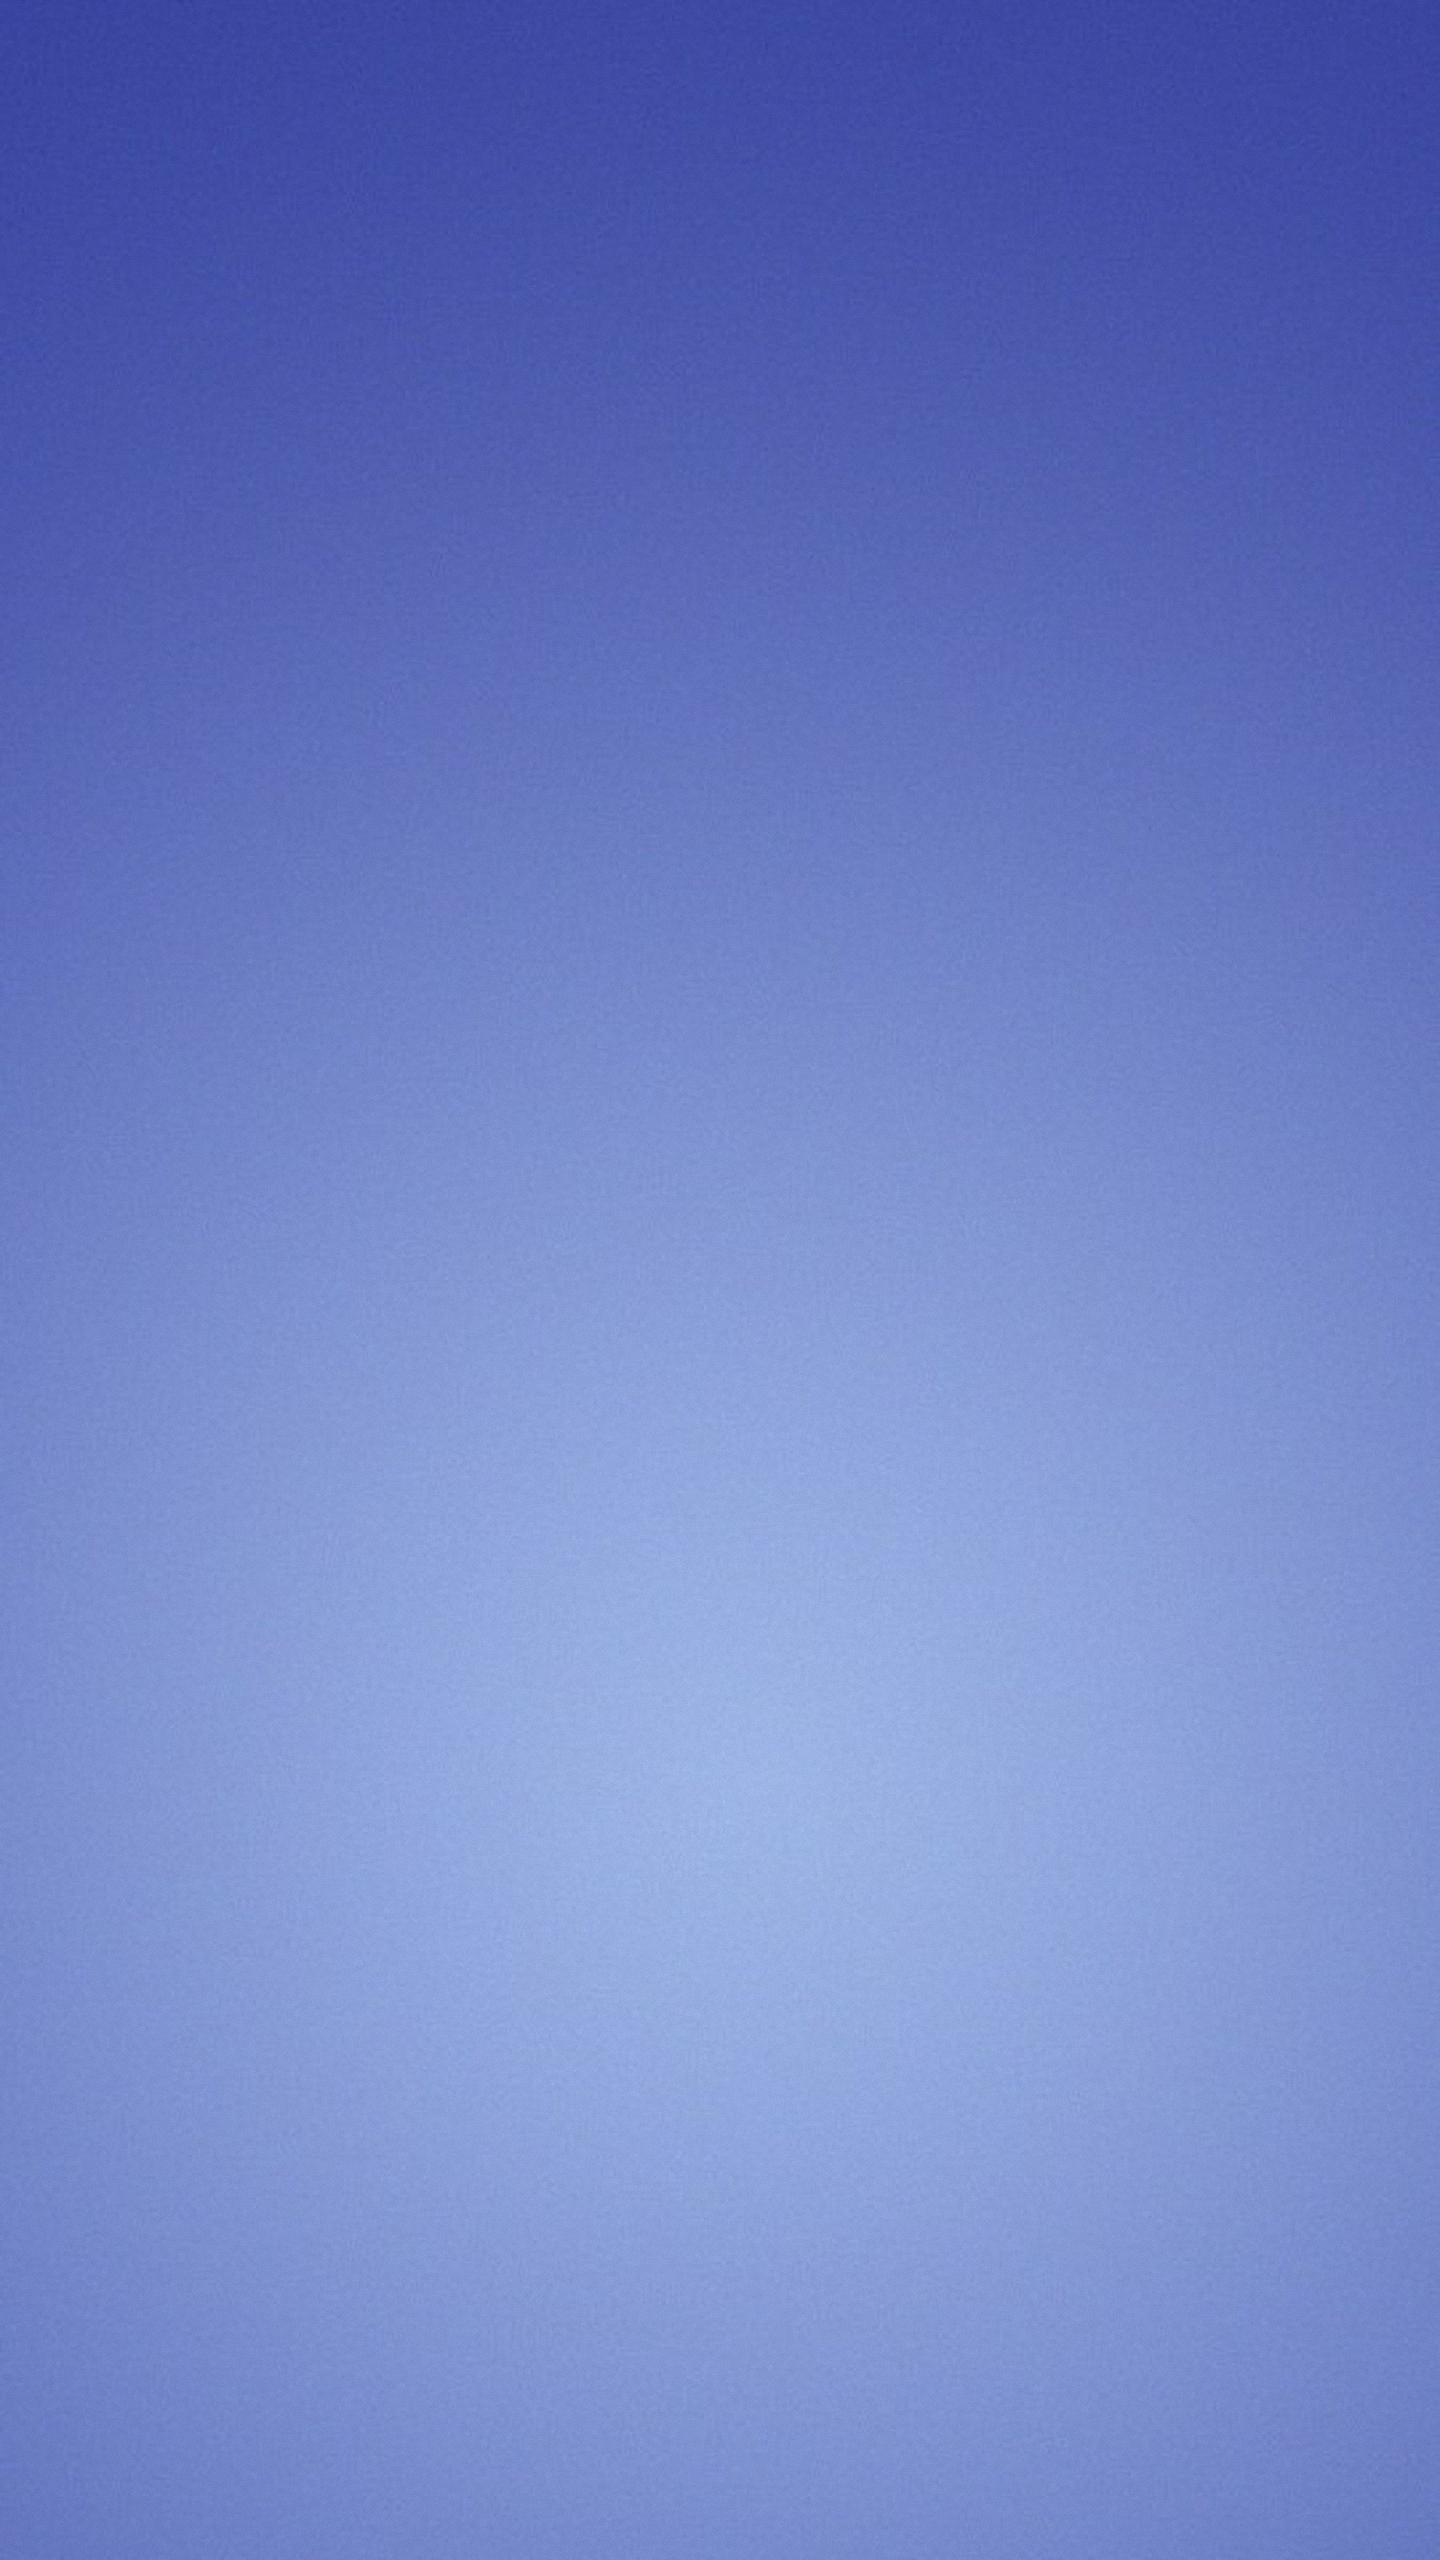 your mobile phone hd 1440x2560 blue gradient mobile phone wallpapers 1440x2560